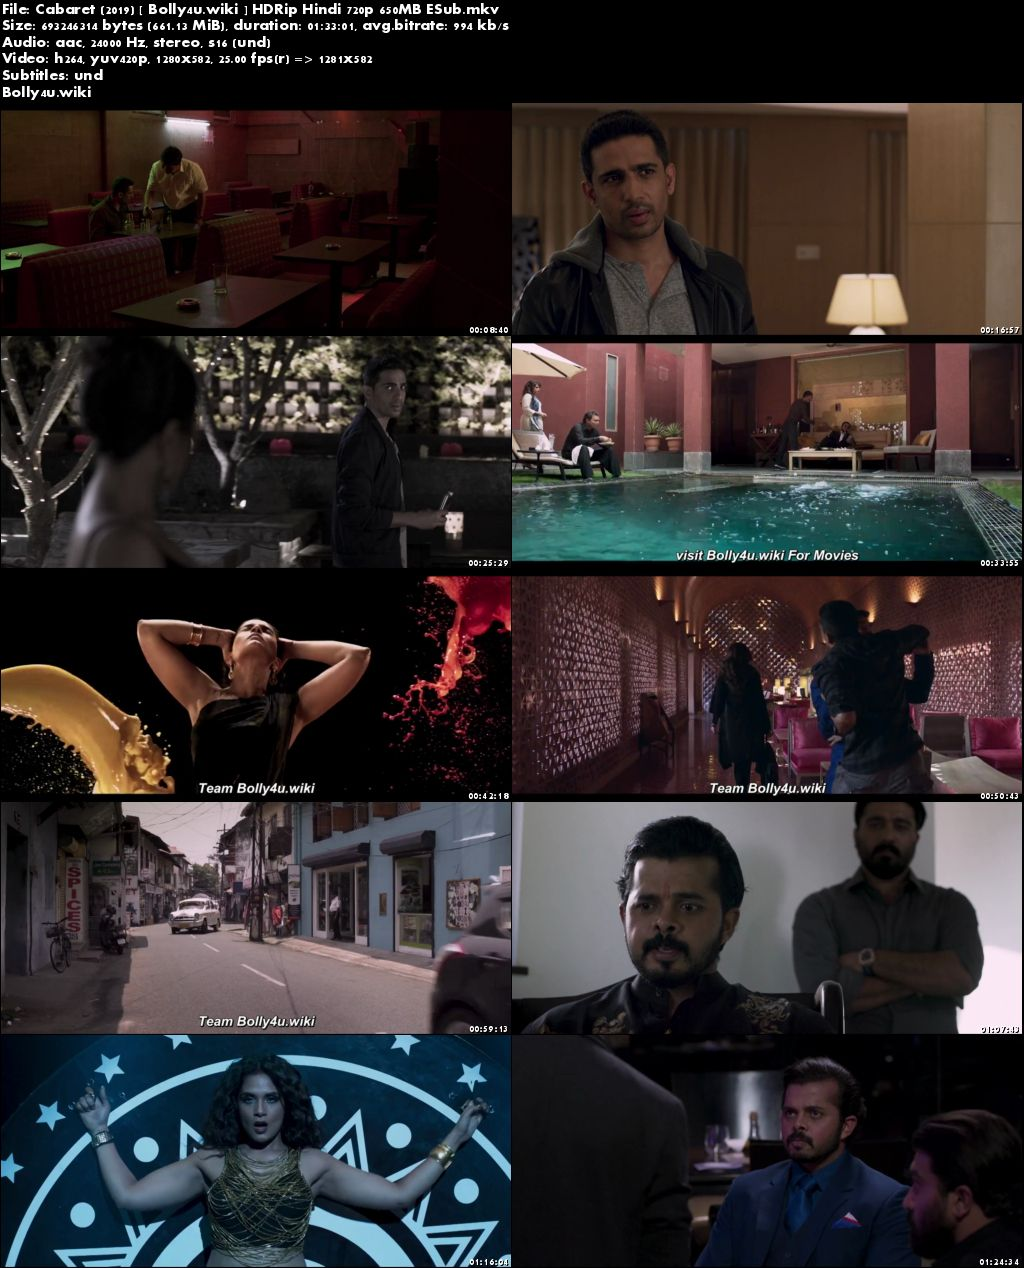 Cabaret 2019 HDRip 300Mb Full Hindi Movie Download 480p ESub